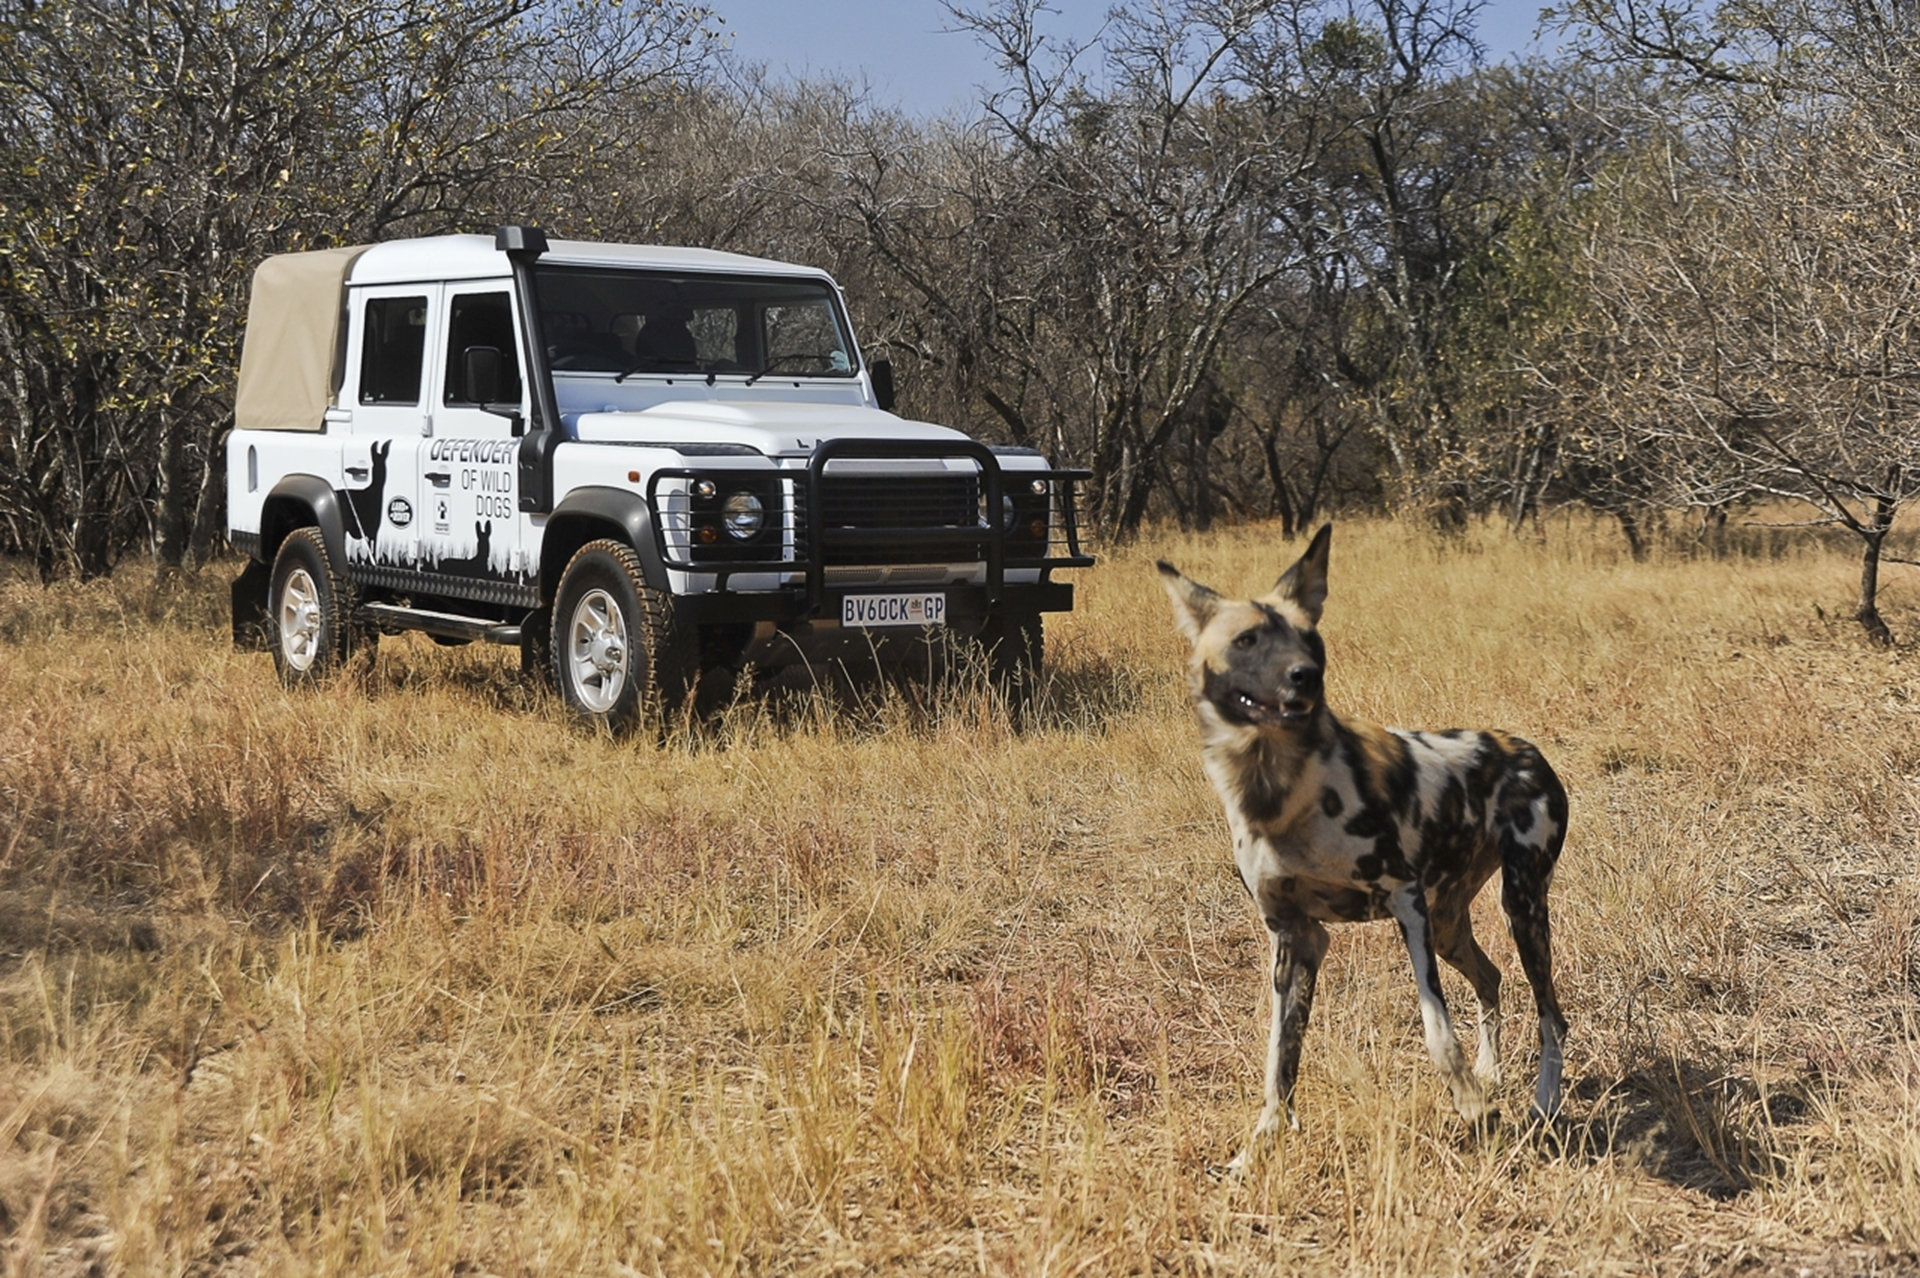 Land Rover Wild Dogs